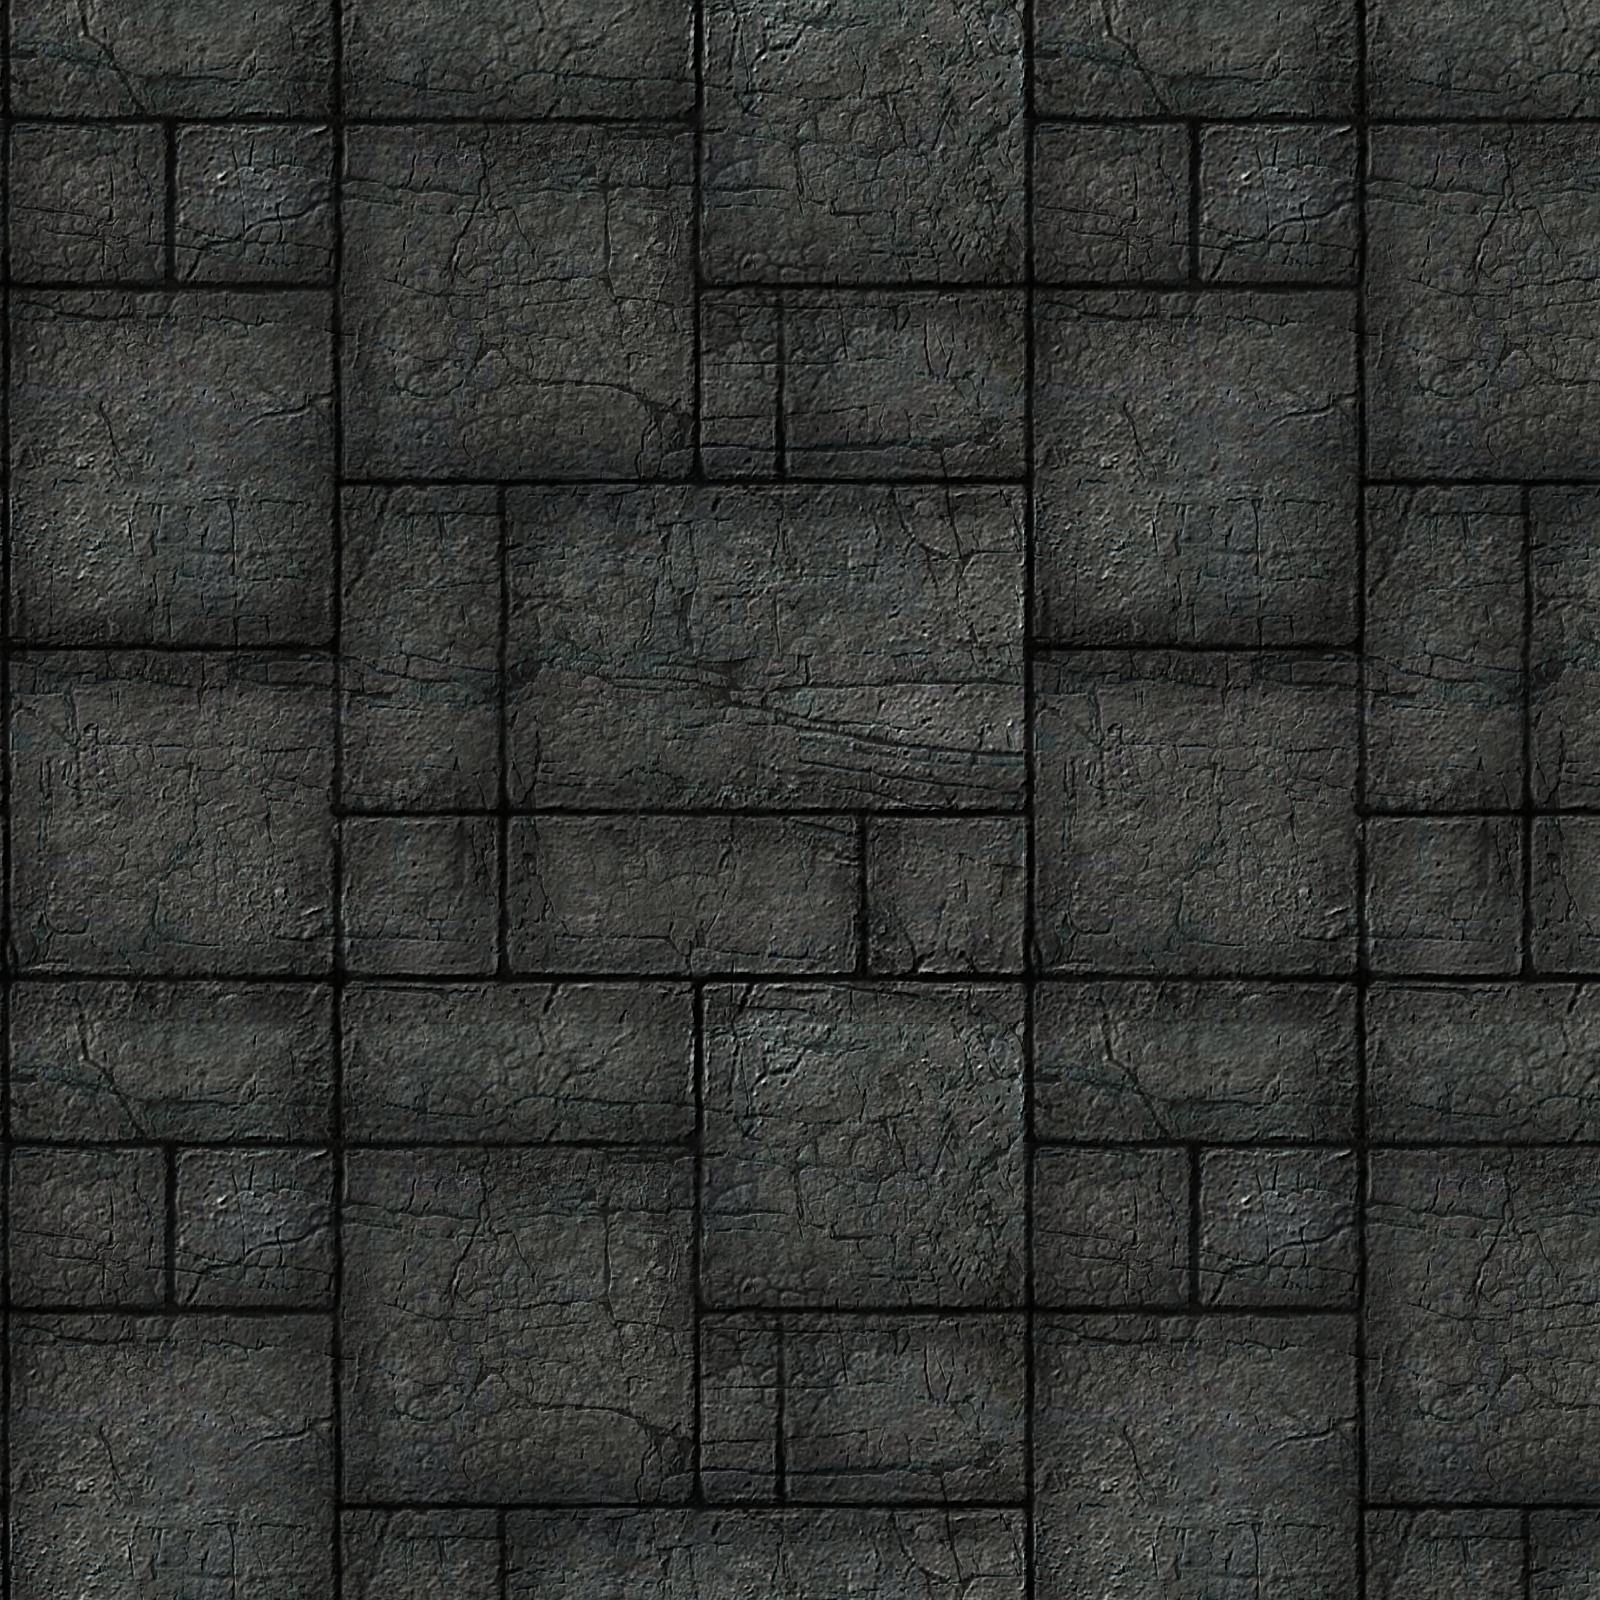 Dundjinni Mapping Software Forums Stone Floor Texture